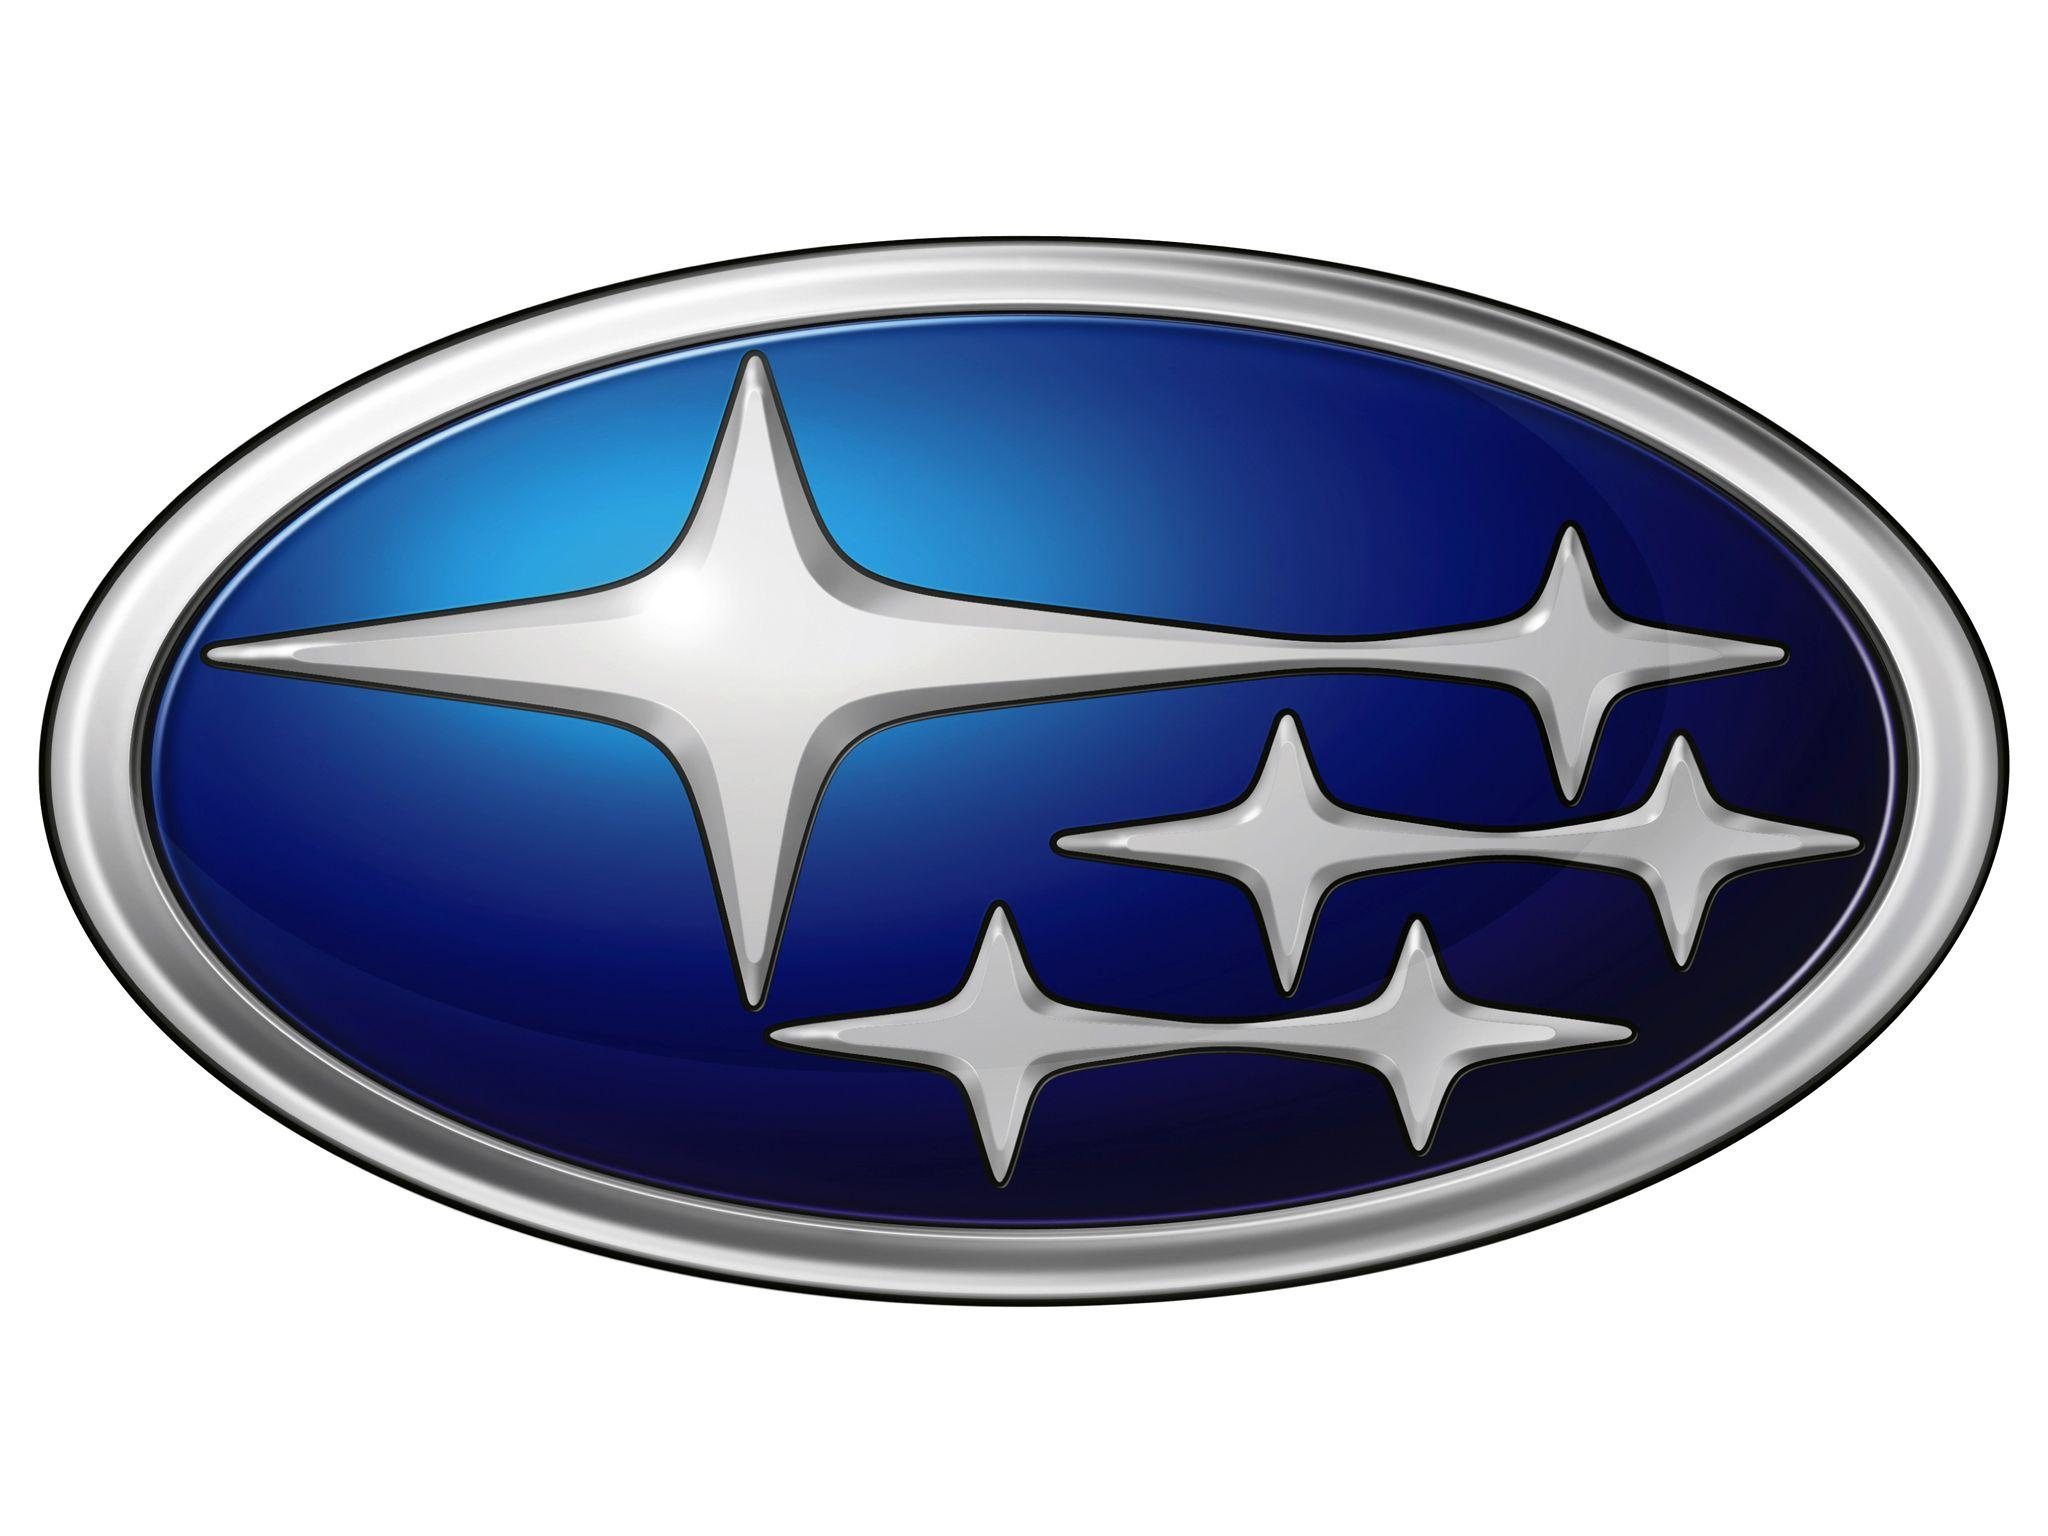 Logos For > Subaru Emblem Wallpapers